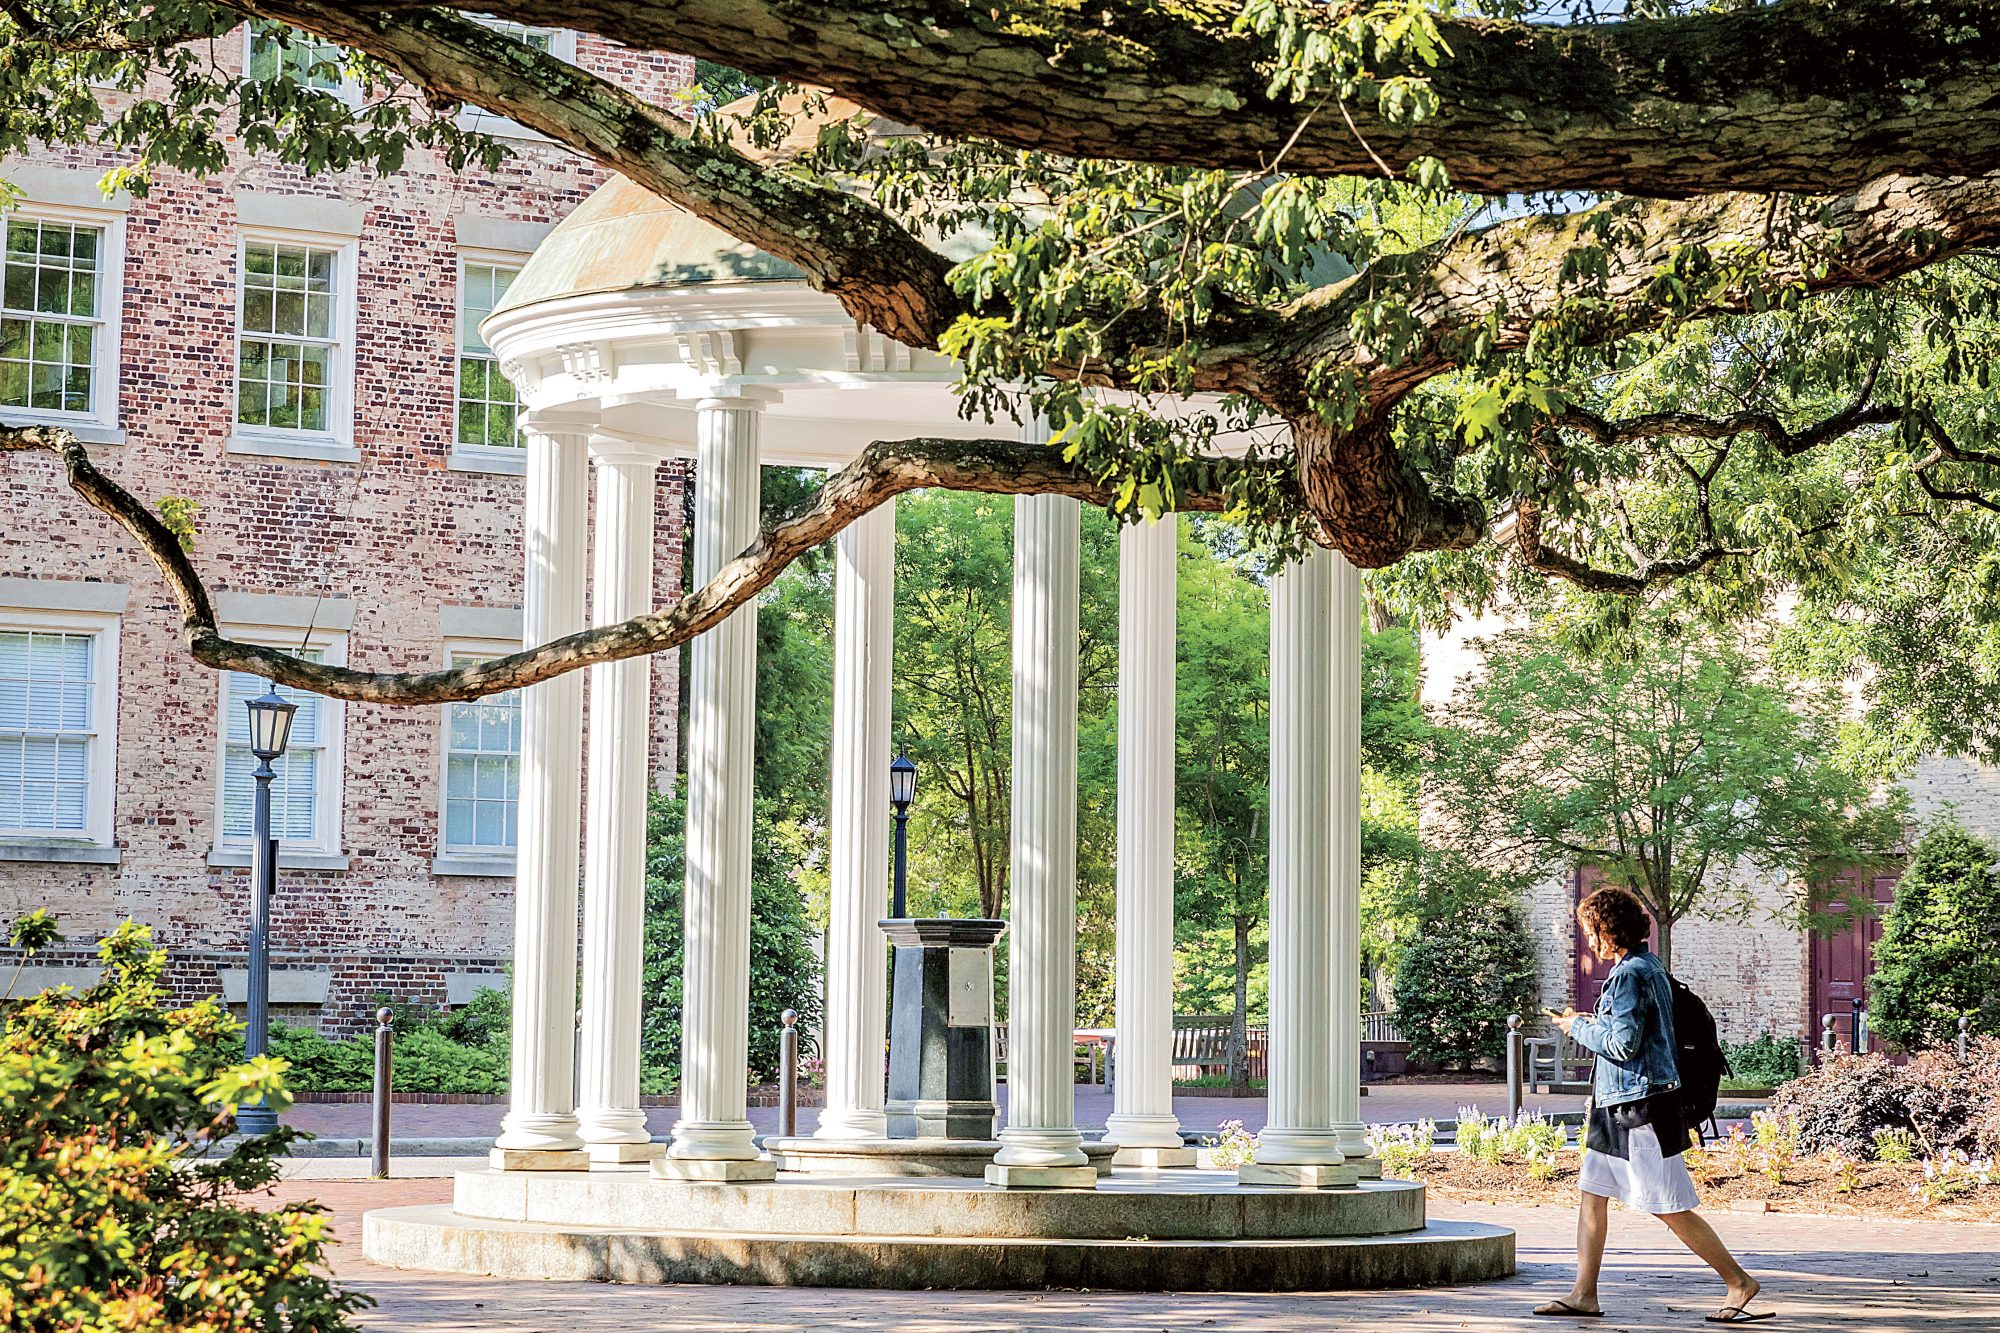 3. Chapel Hill, North Carolina